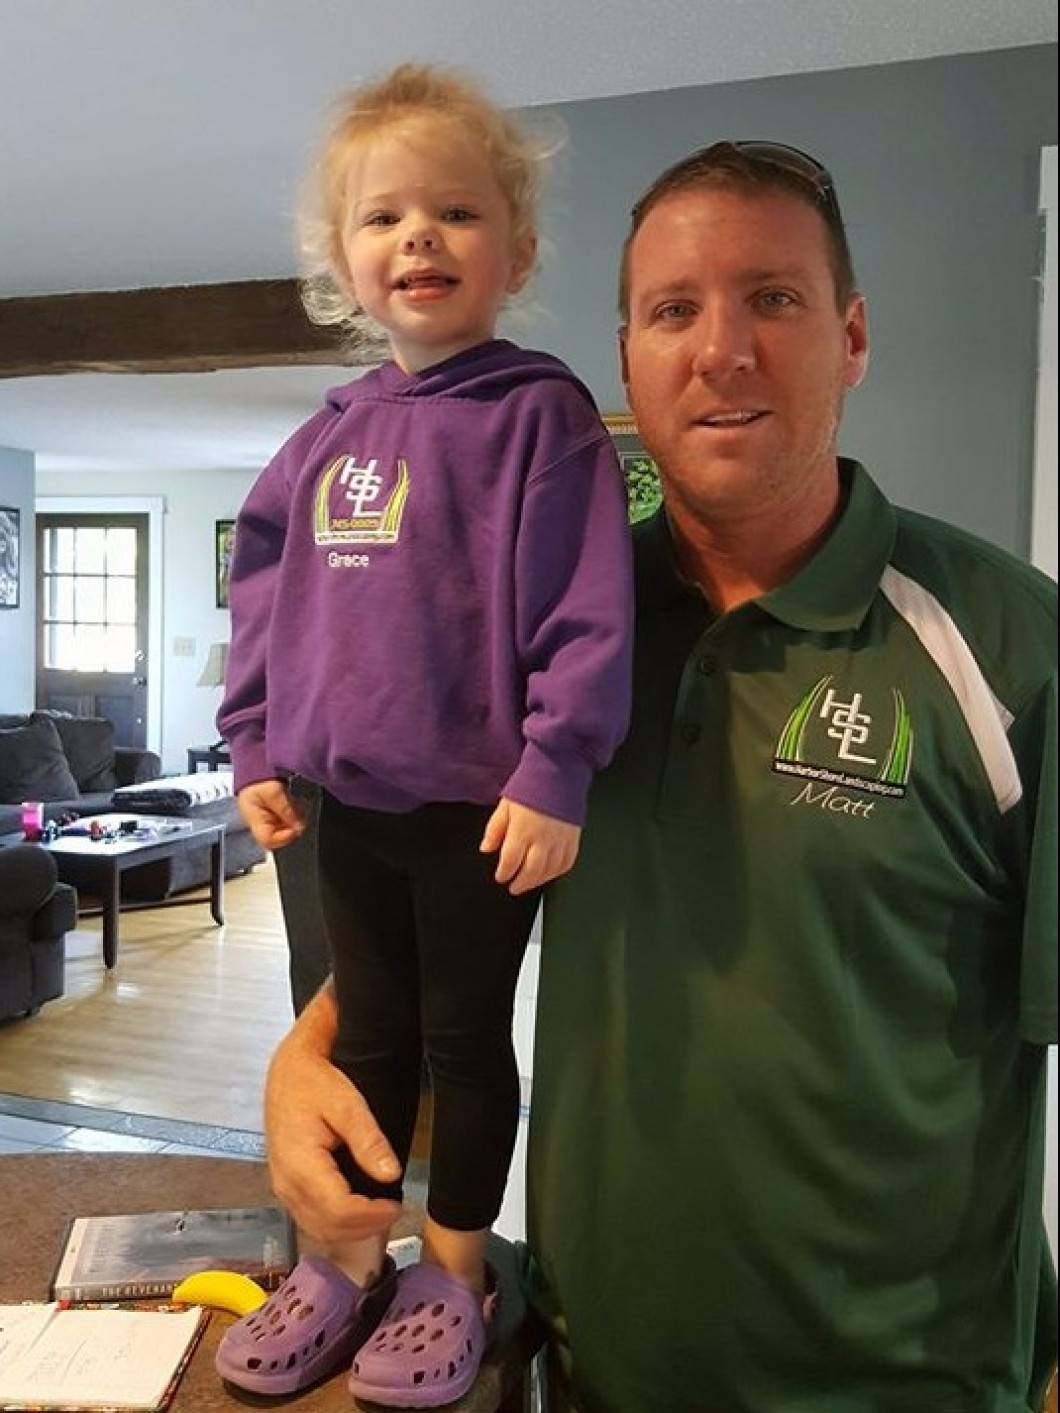 HSL youngest team player off to work with Daddy this morning, uniform and all.